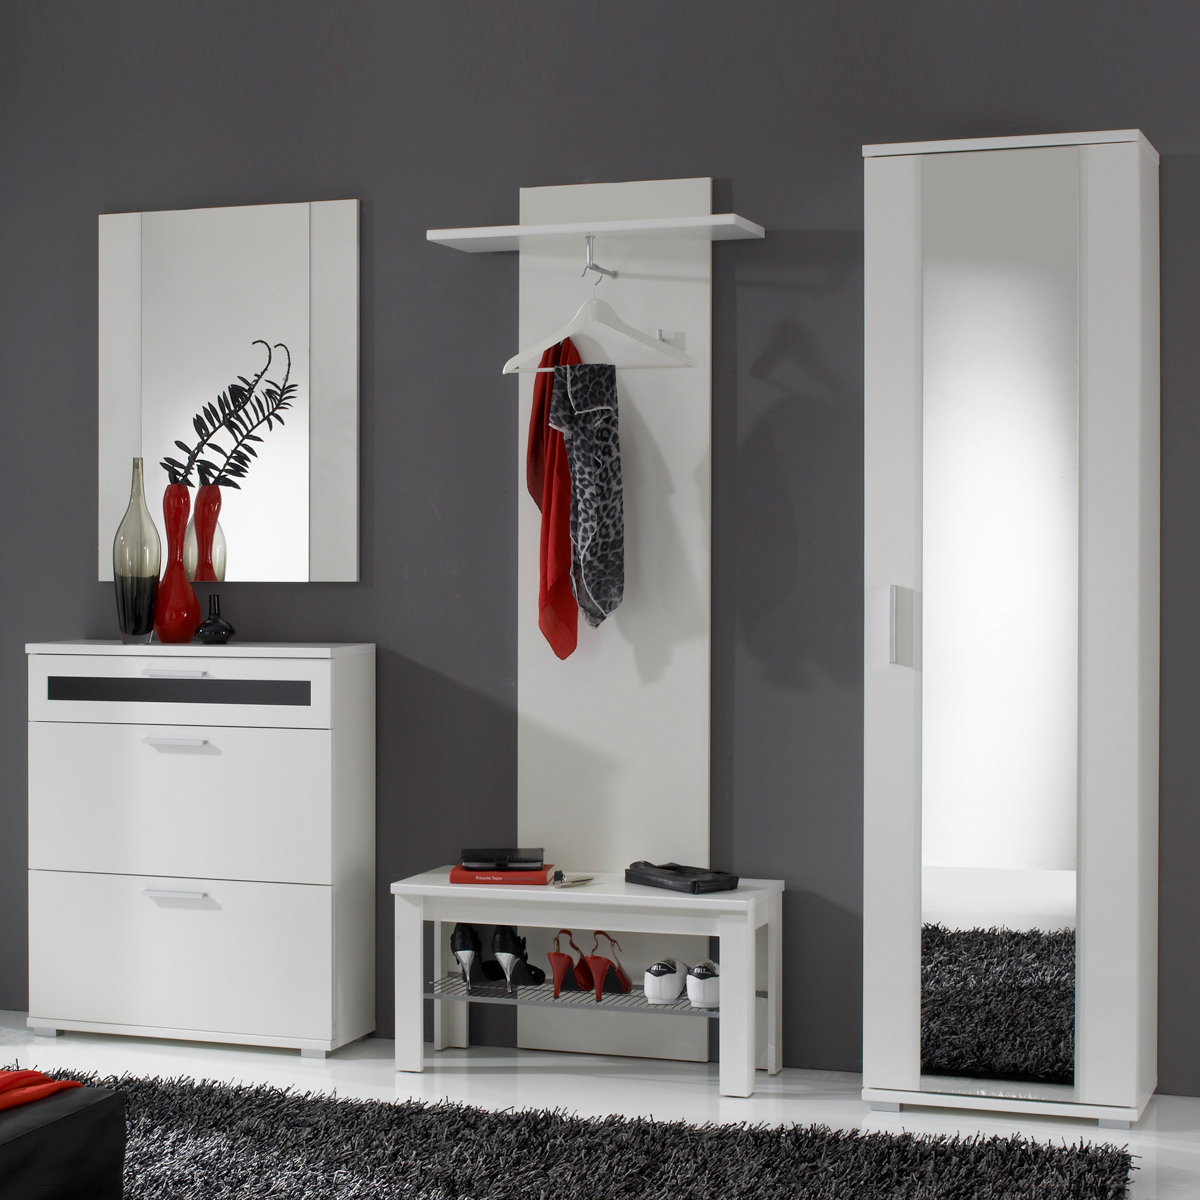 garderobe solido set mit flur schrank schuhkommode wandpaneel schuhbank in wei ebay. Black Bedroom Furniture Sets. Home Design Ideas